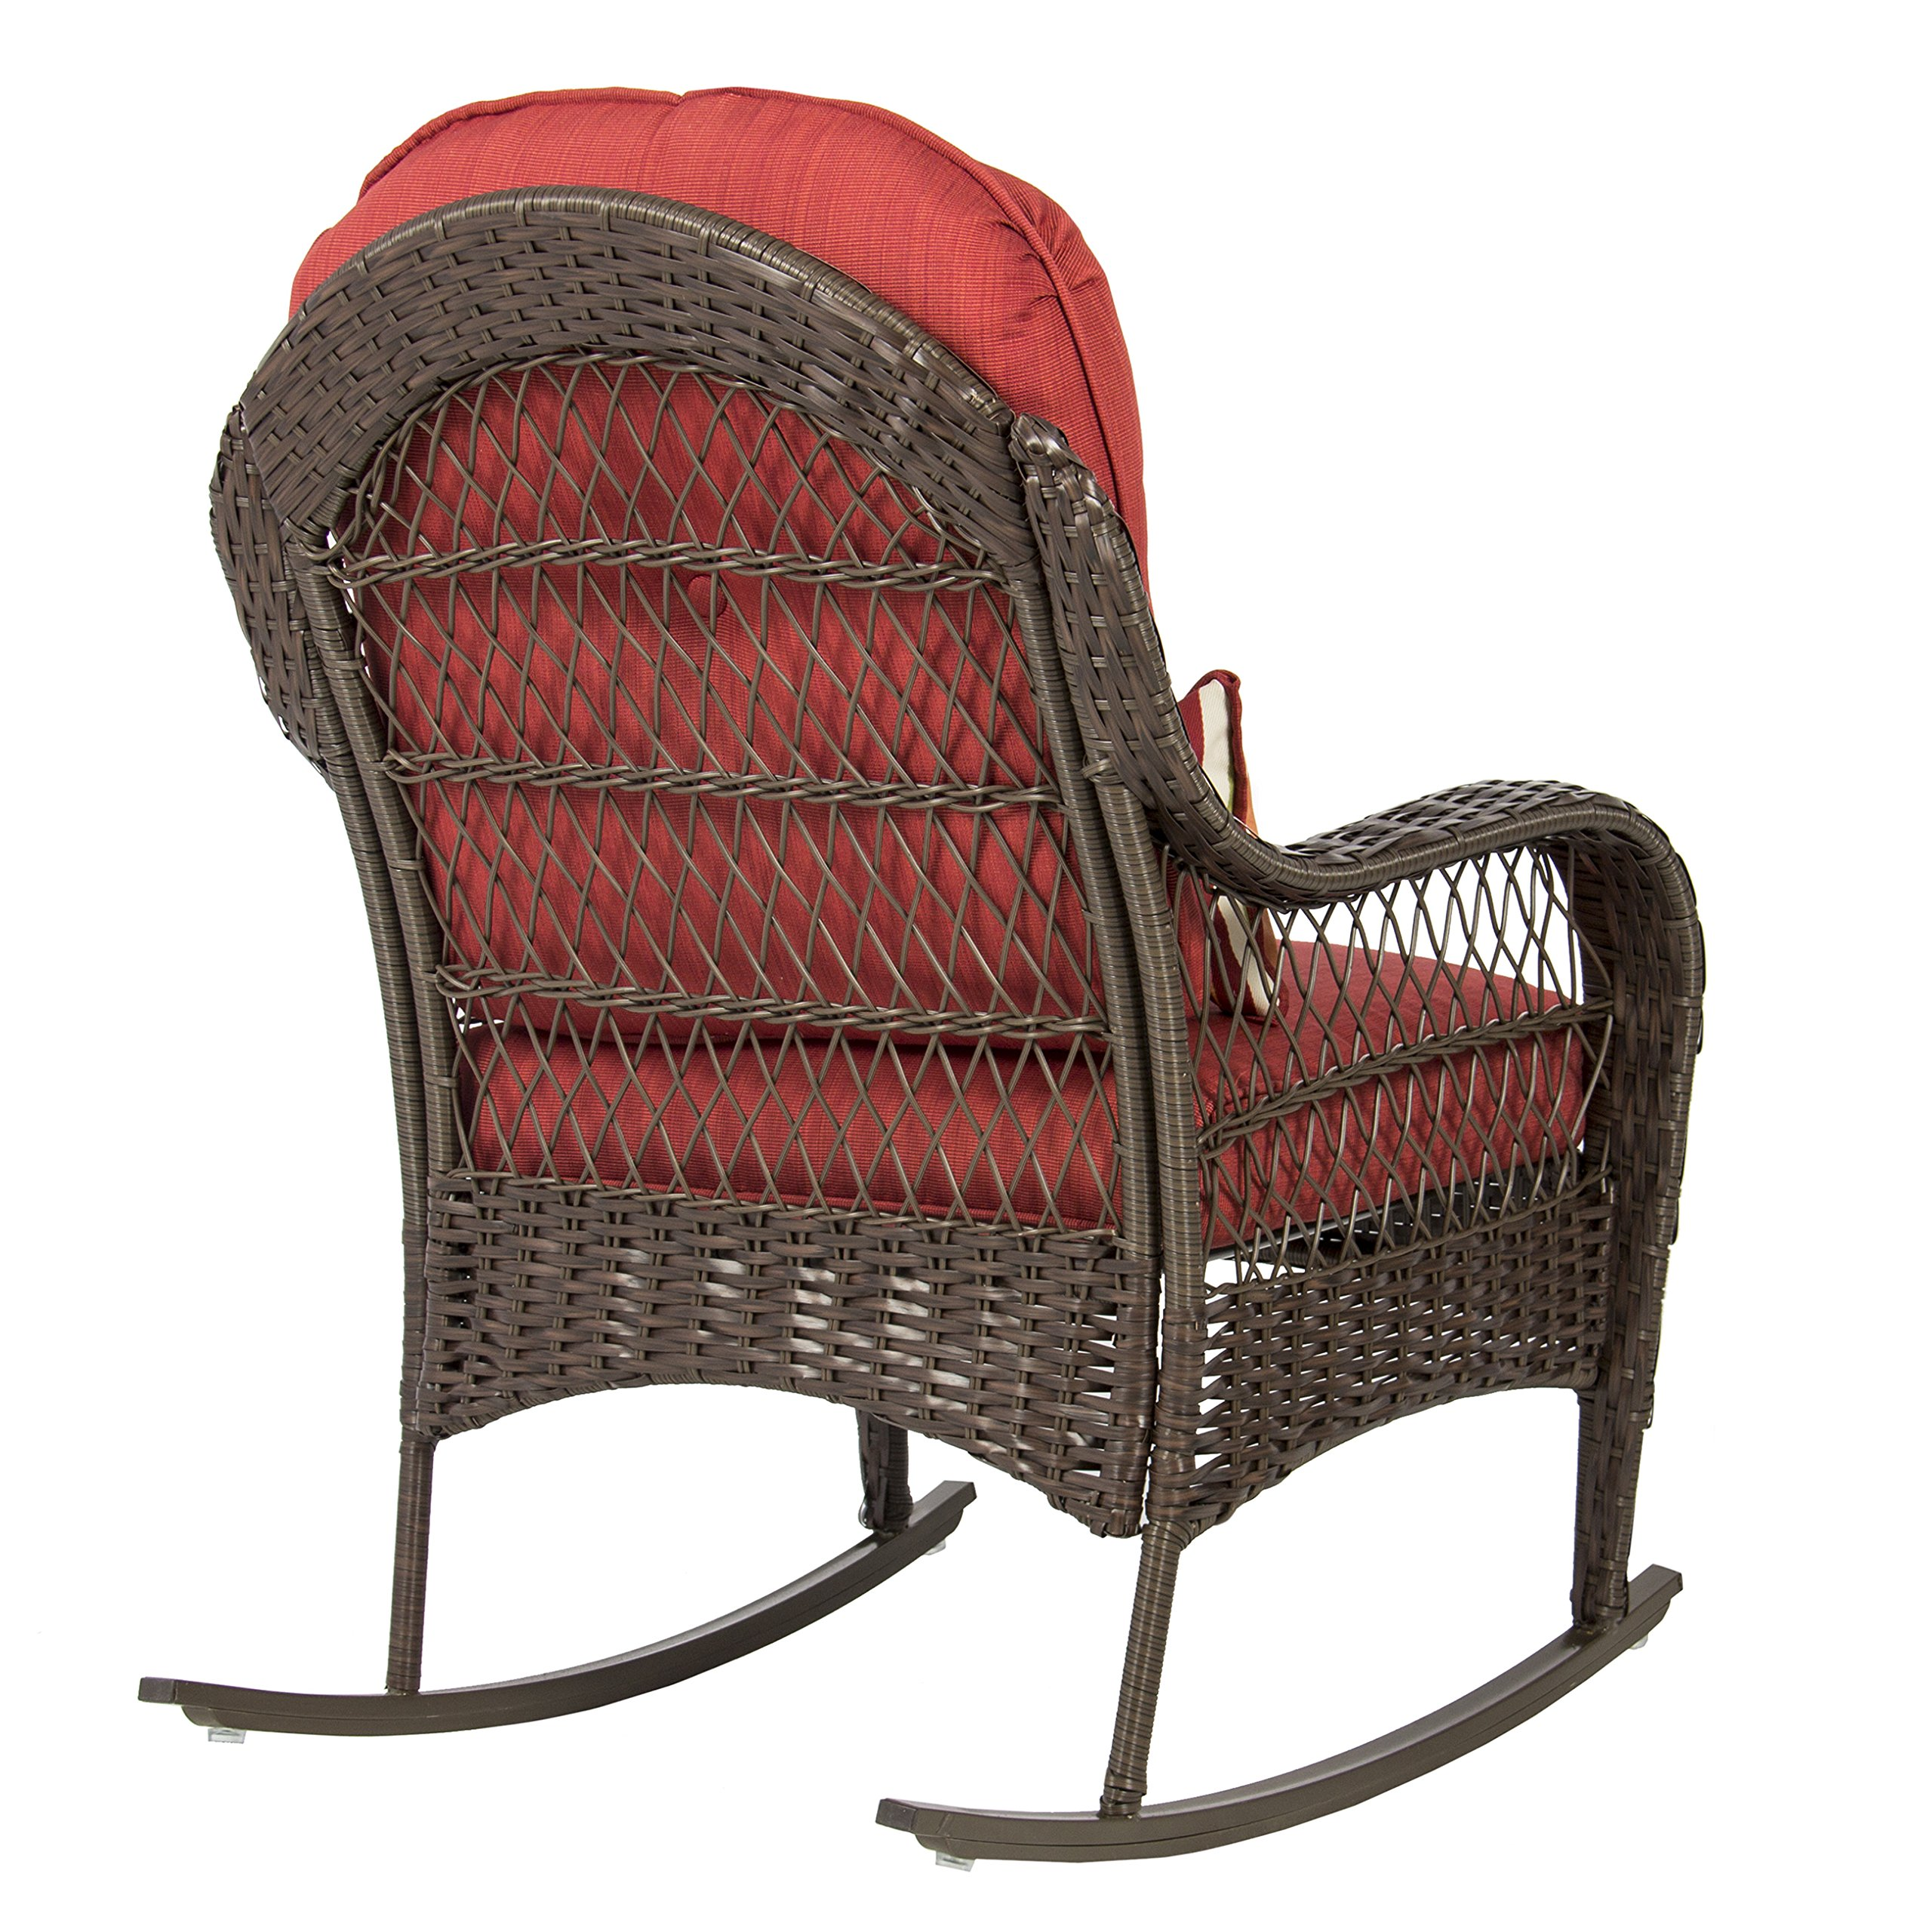 Best ChoiceProducts Wicker Rocking Chair Patio Porch Deck Furniture All Weather Proof with Cushions by Best Choice Products (Image #3)